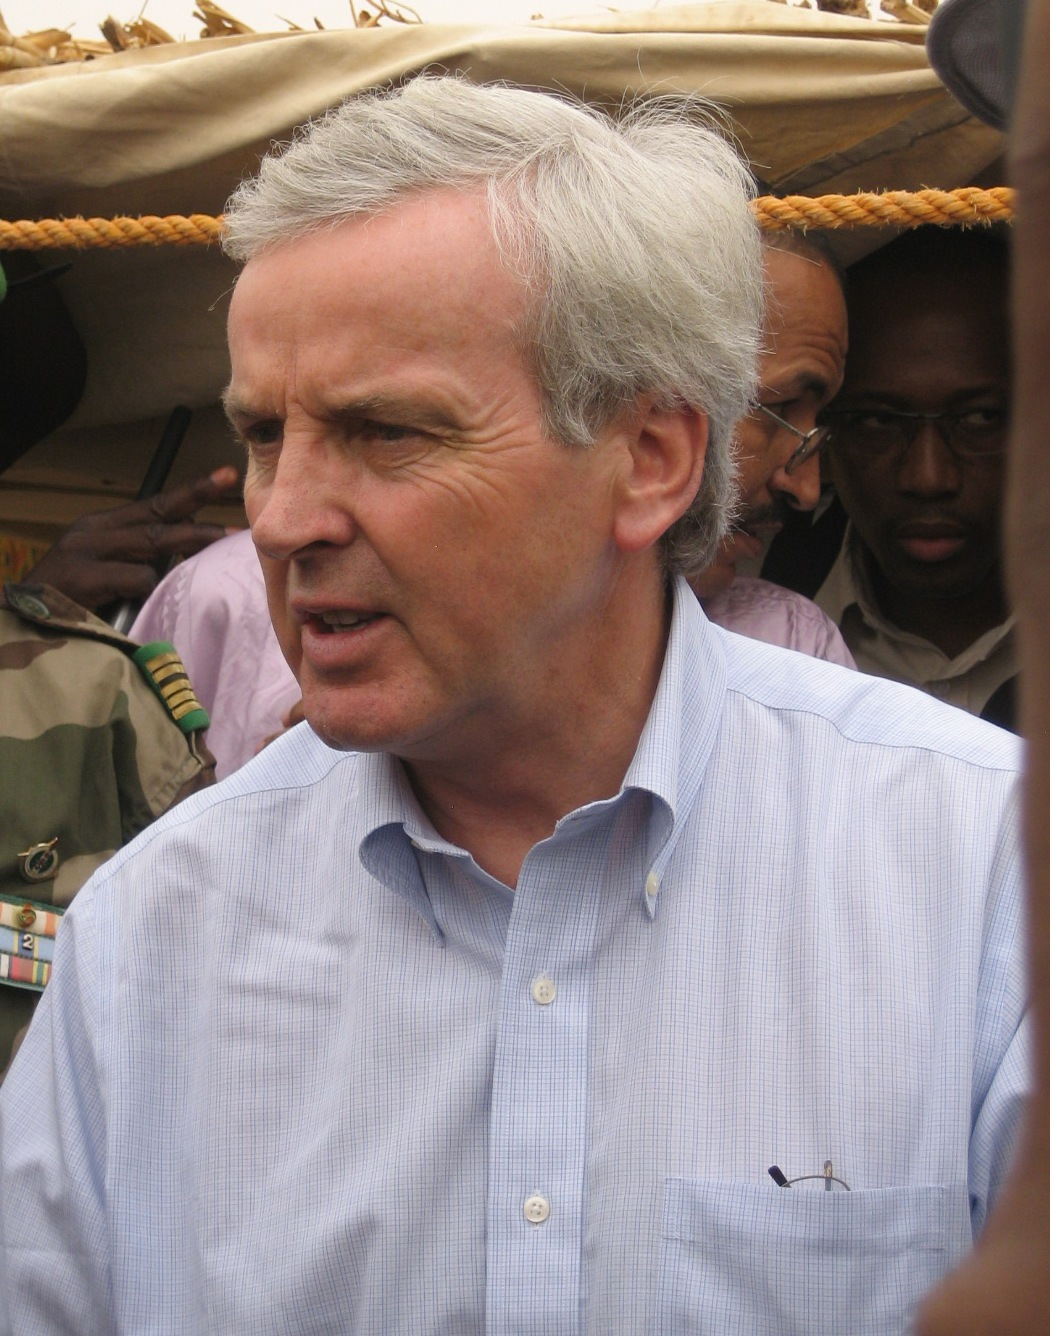 John Holmes, UN Emergency Relief Coordinator, during a field visit in the region of Zinder, Southern Niger. April 2010